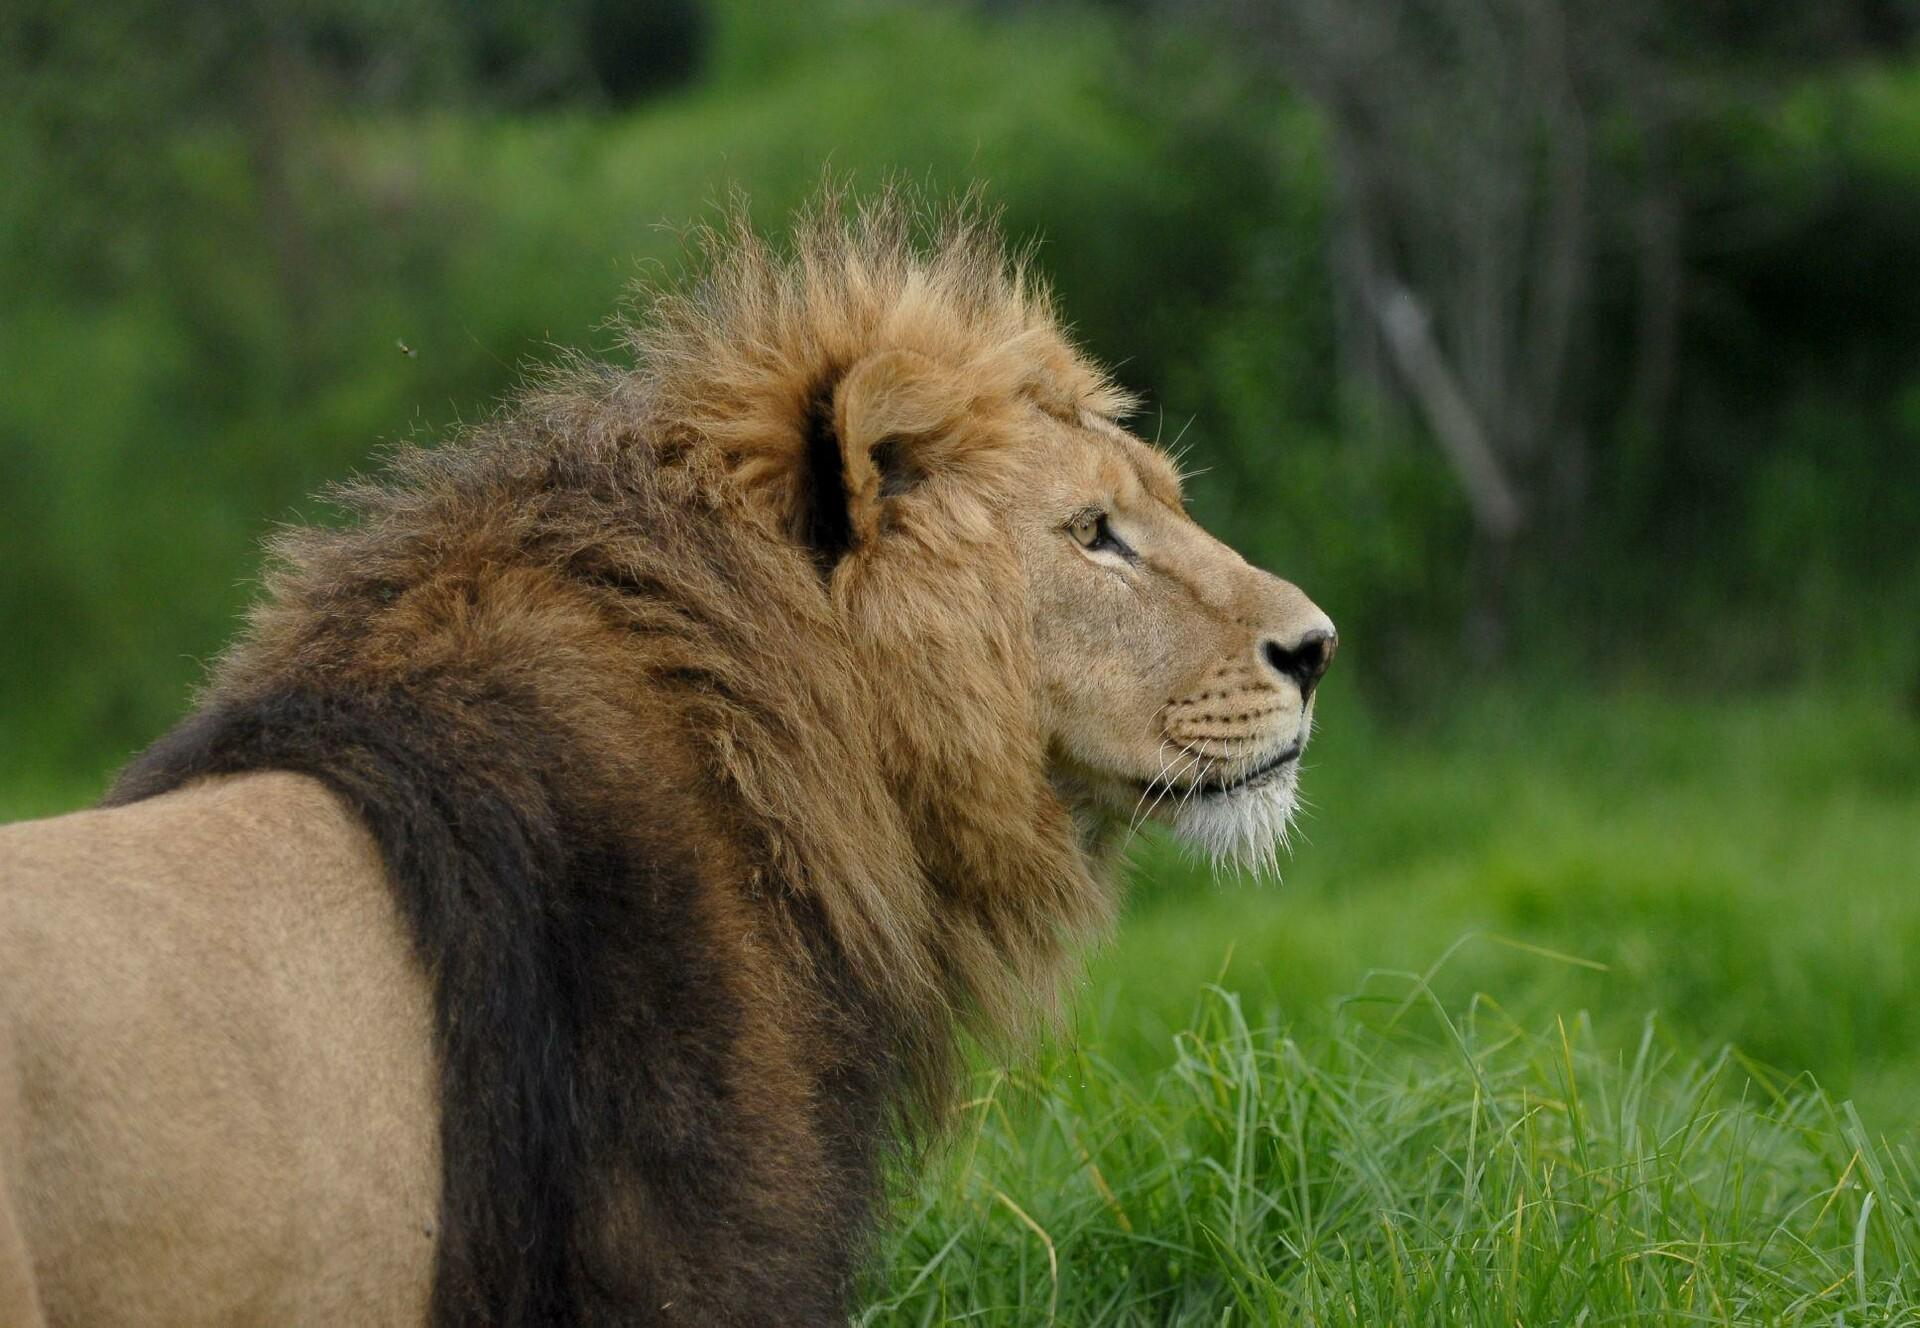 Lions in care at FOUR PAWS